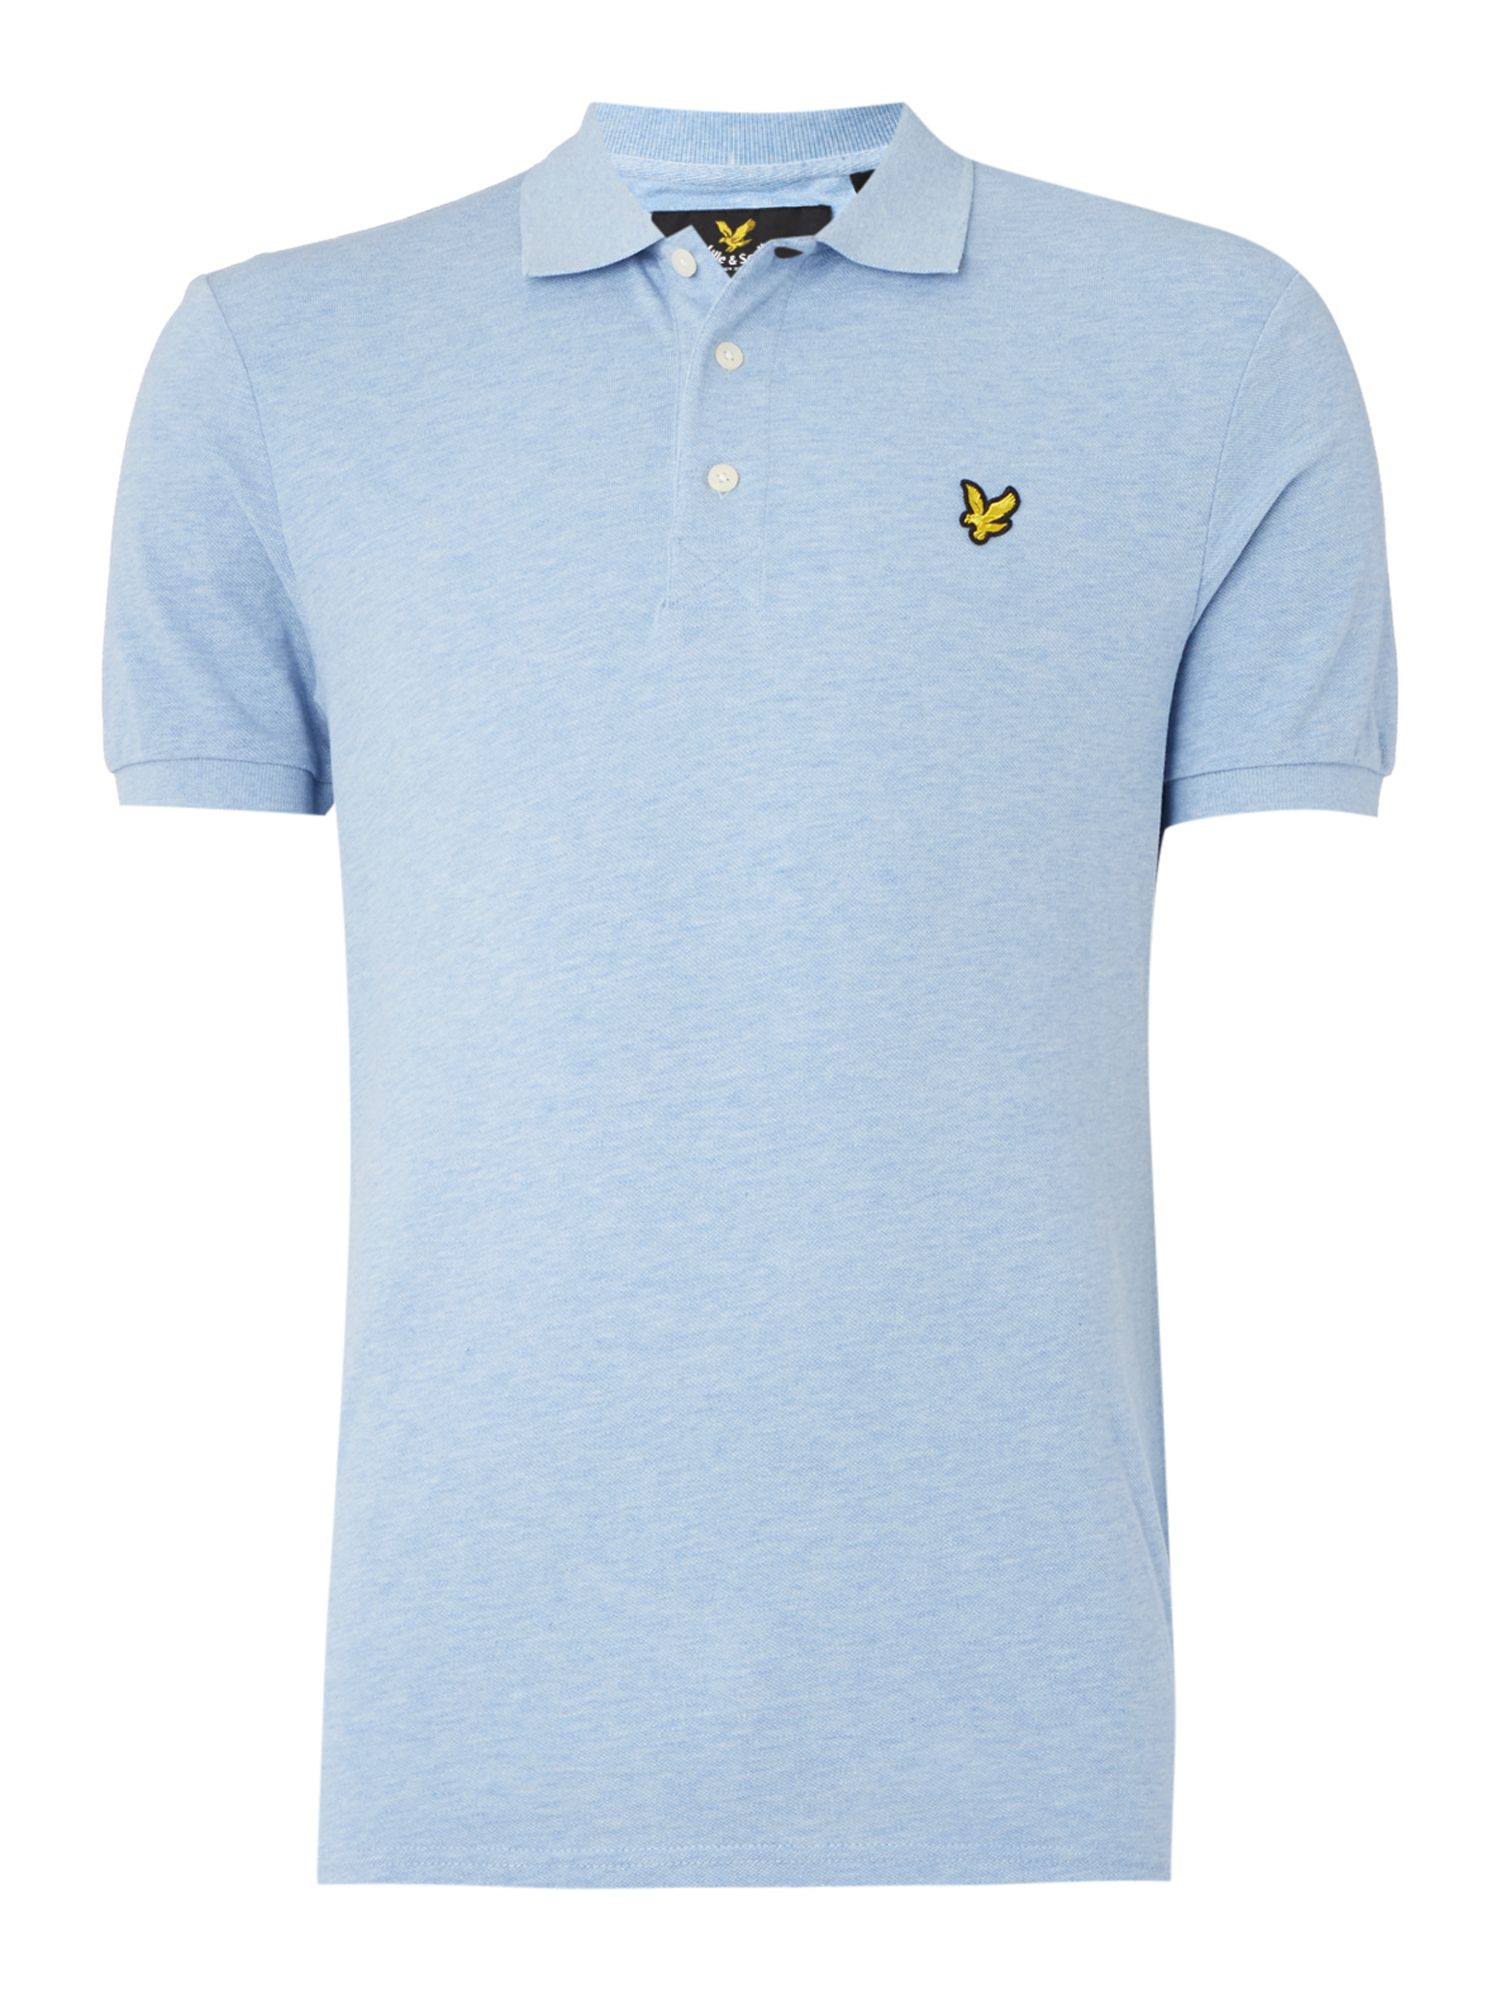 Men's Lyle and Scott Short Sleeve Classic Polo, Blue Marl